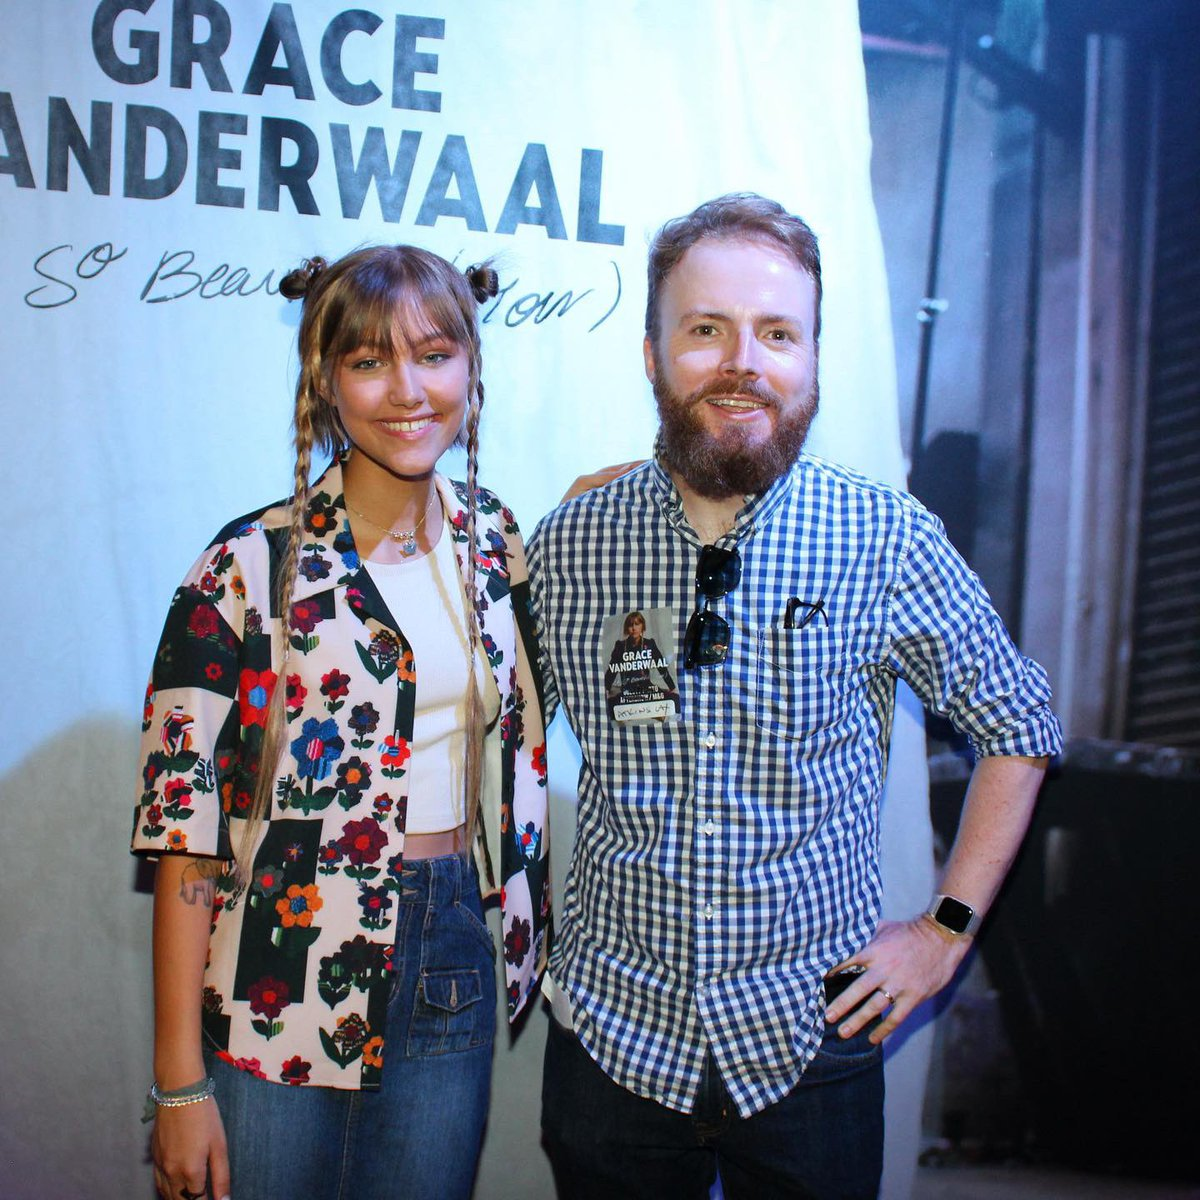 Finally got to meet my most famous pupil @GraceVanderWaal in person tonight! Surprised her at the preshow meet-and-greet. Just as cool, funny, humble and down-to-earth as you might expect. Thanks, Grace - and congratulations on everything!<br>http://pic.twitter.com/6r8hZjyYNh